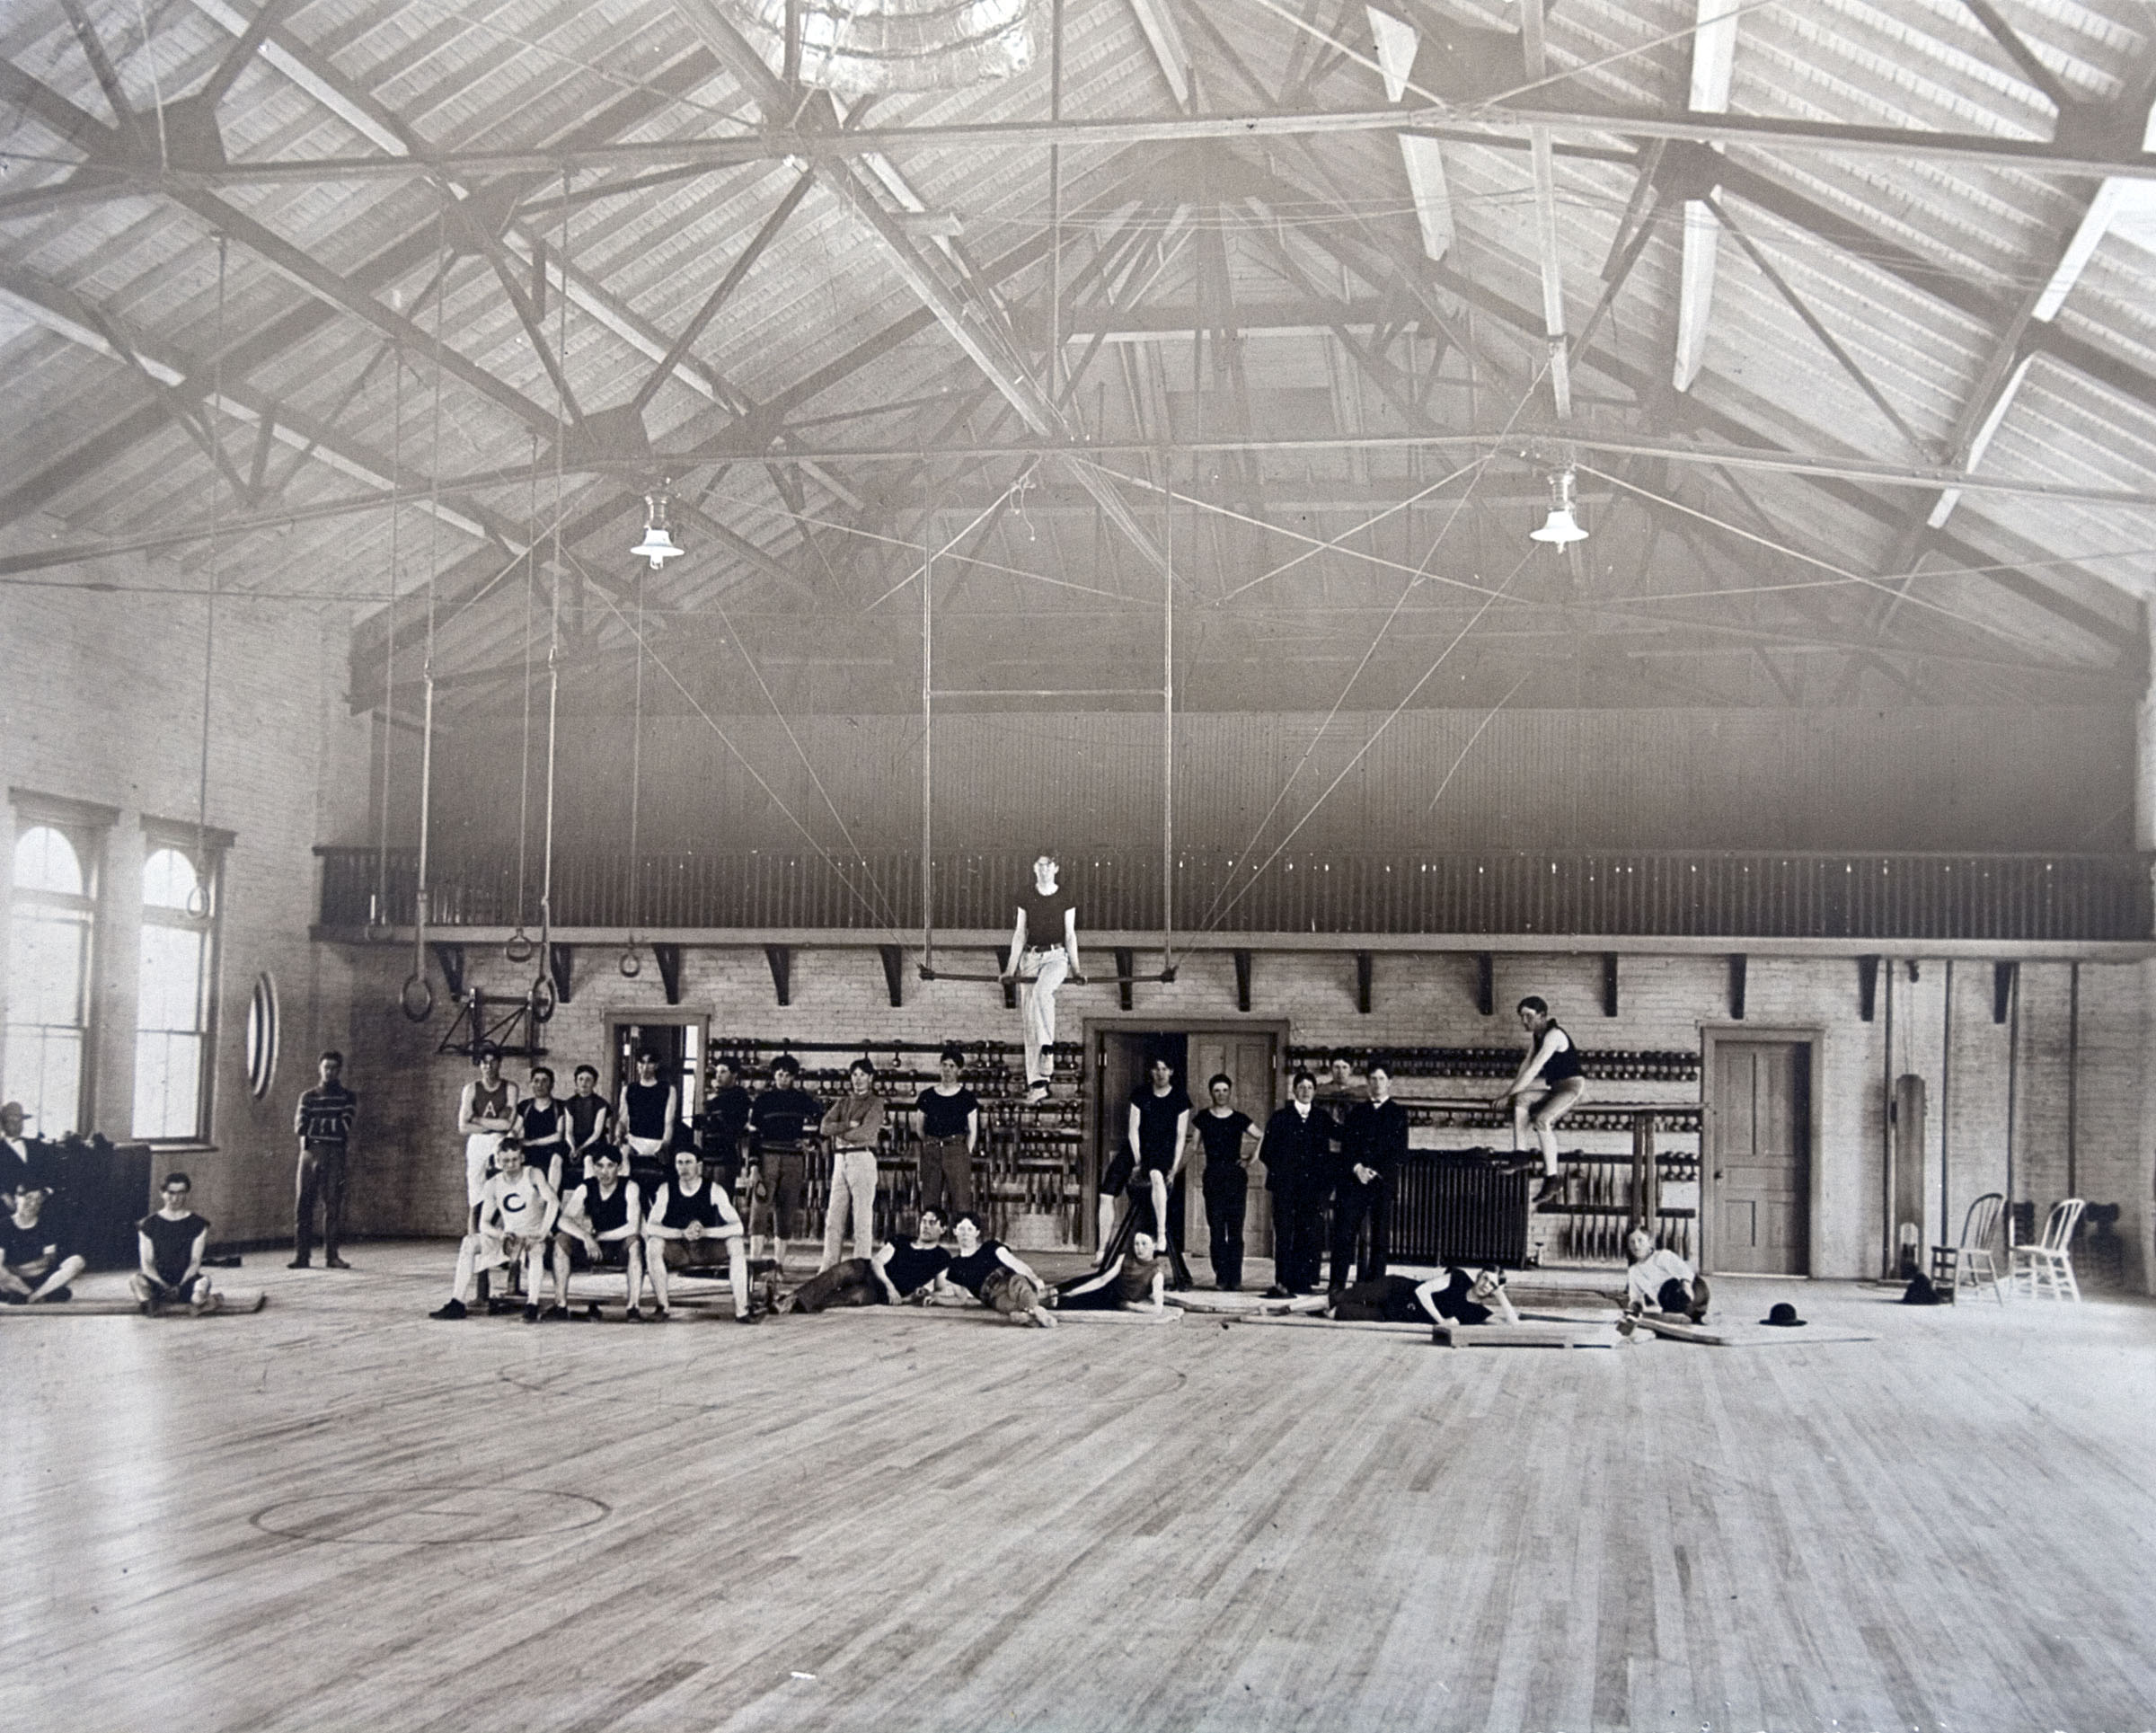 """""""When the Language Training Mission was faced with overcrowded conditions, missionaries were required to live in the Men's Gym. Elders who stayed in the gym called it the 'Provo Hilton.' """" — This is the caption information found on the frame plaque accompany this photo, one nearly dozen historical photos showing the development of the Language Training Mission and Missionary Training Center facilities in Provo since the 1960s."""